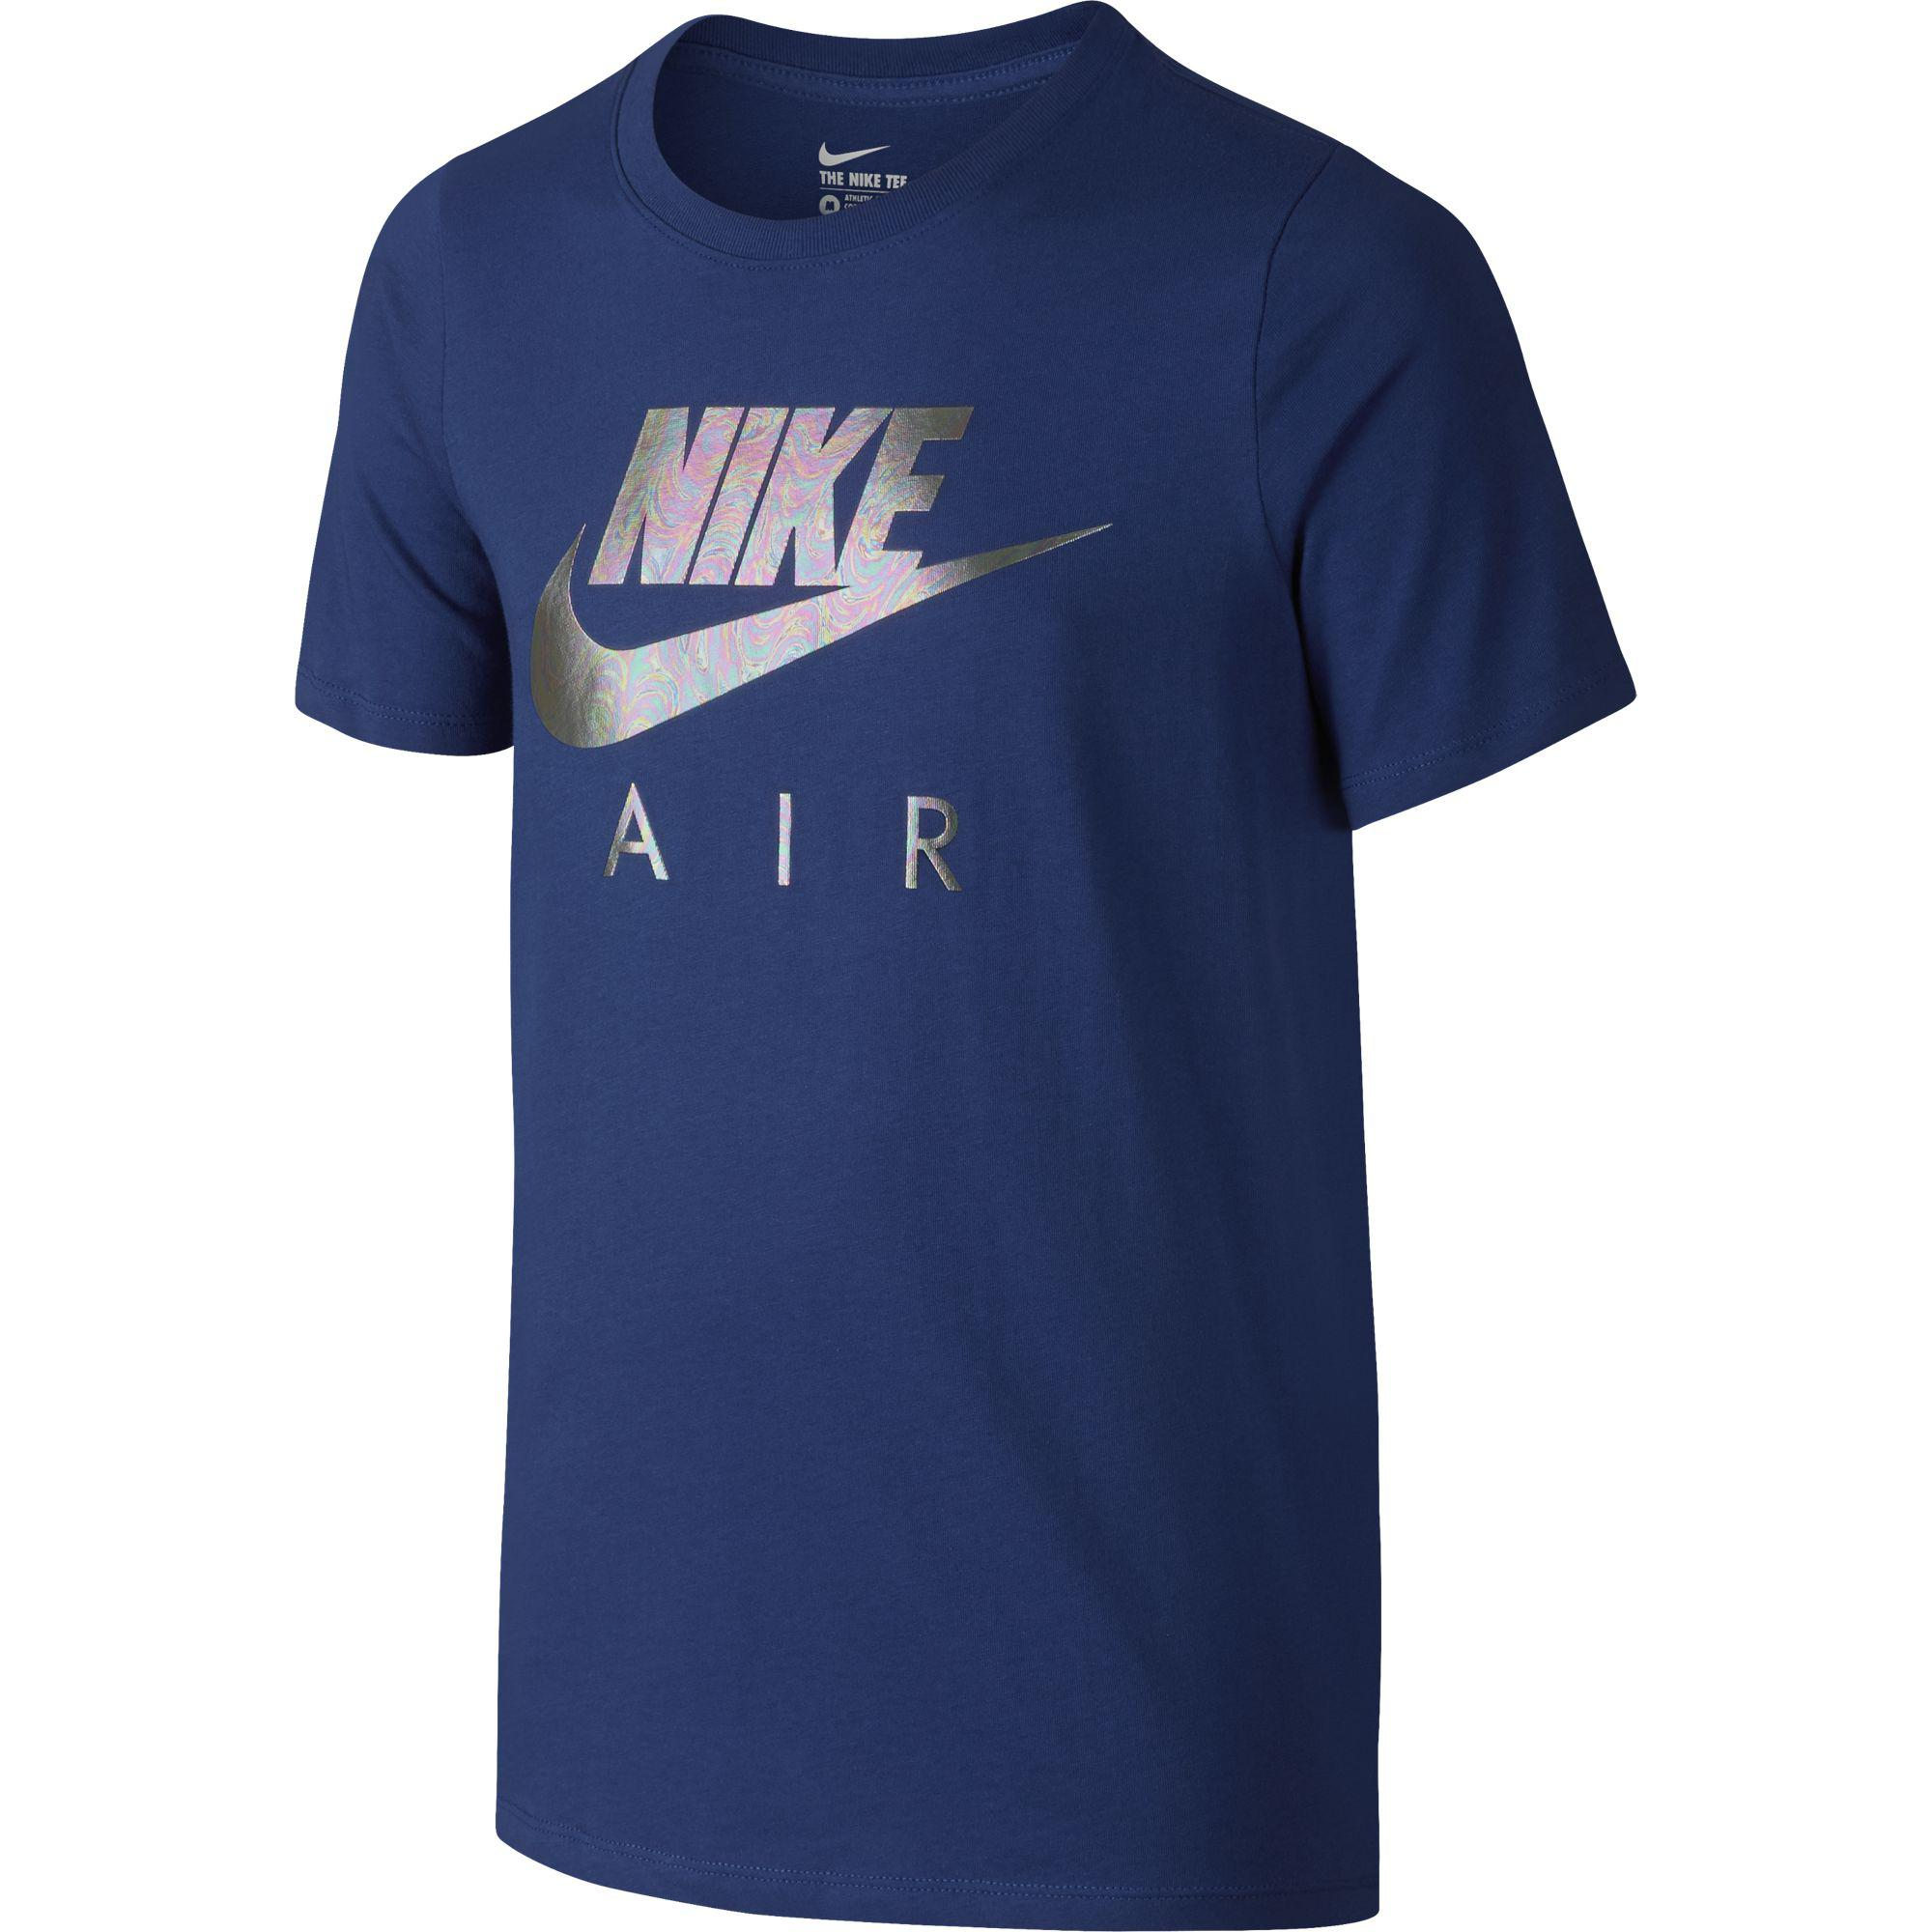 181e2c5c3417 Nike Boys Air Short Sleeve Tee - Deep Royal Blue - Tennisnuts.com